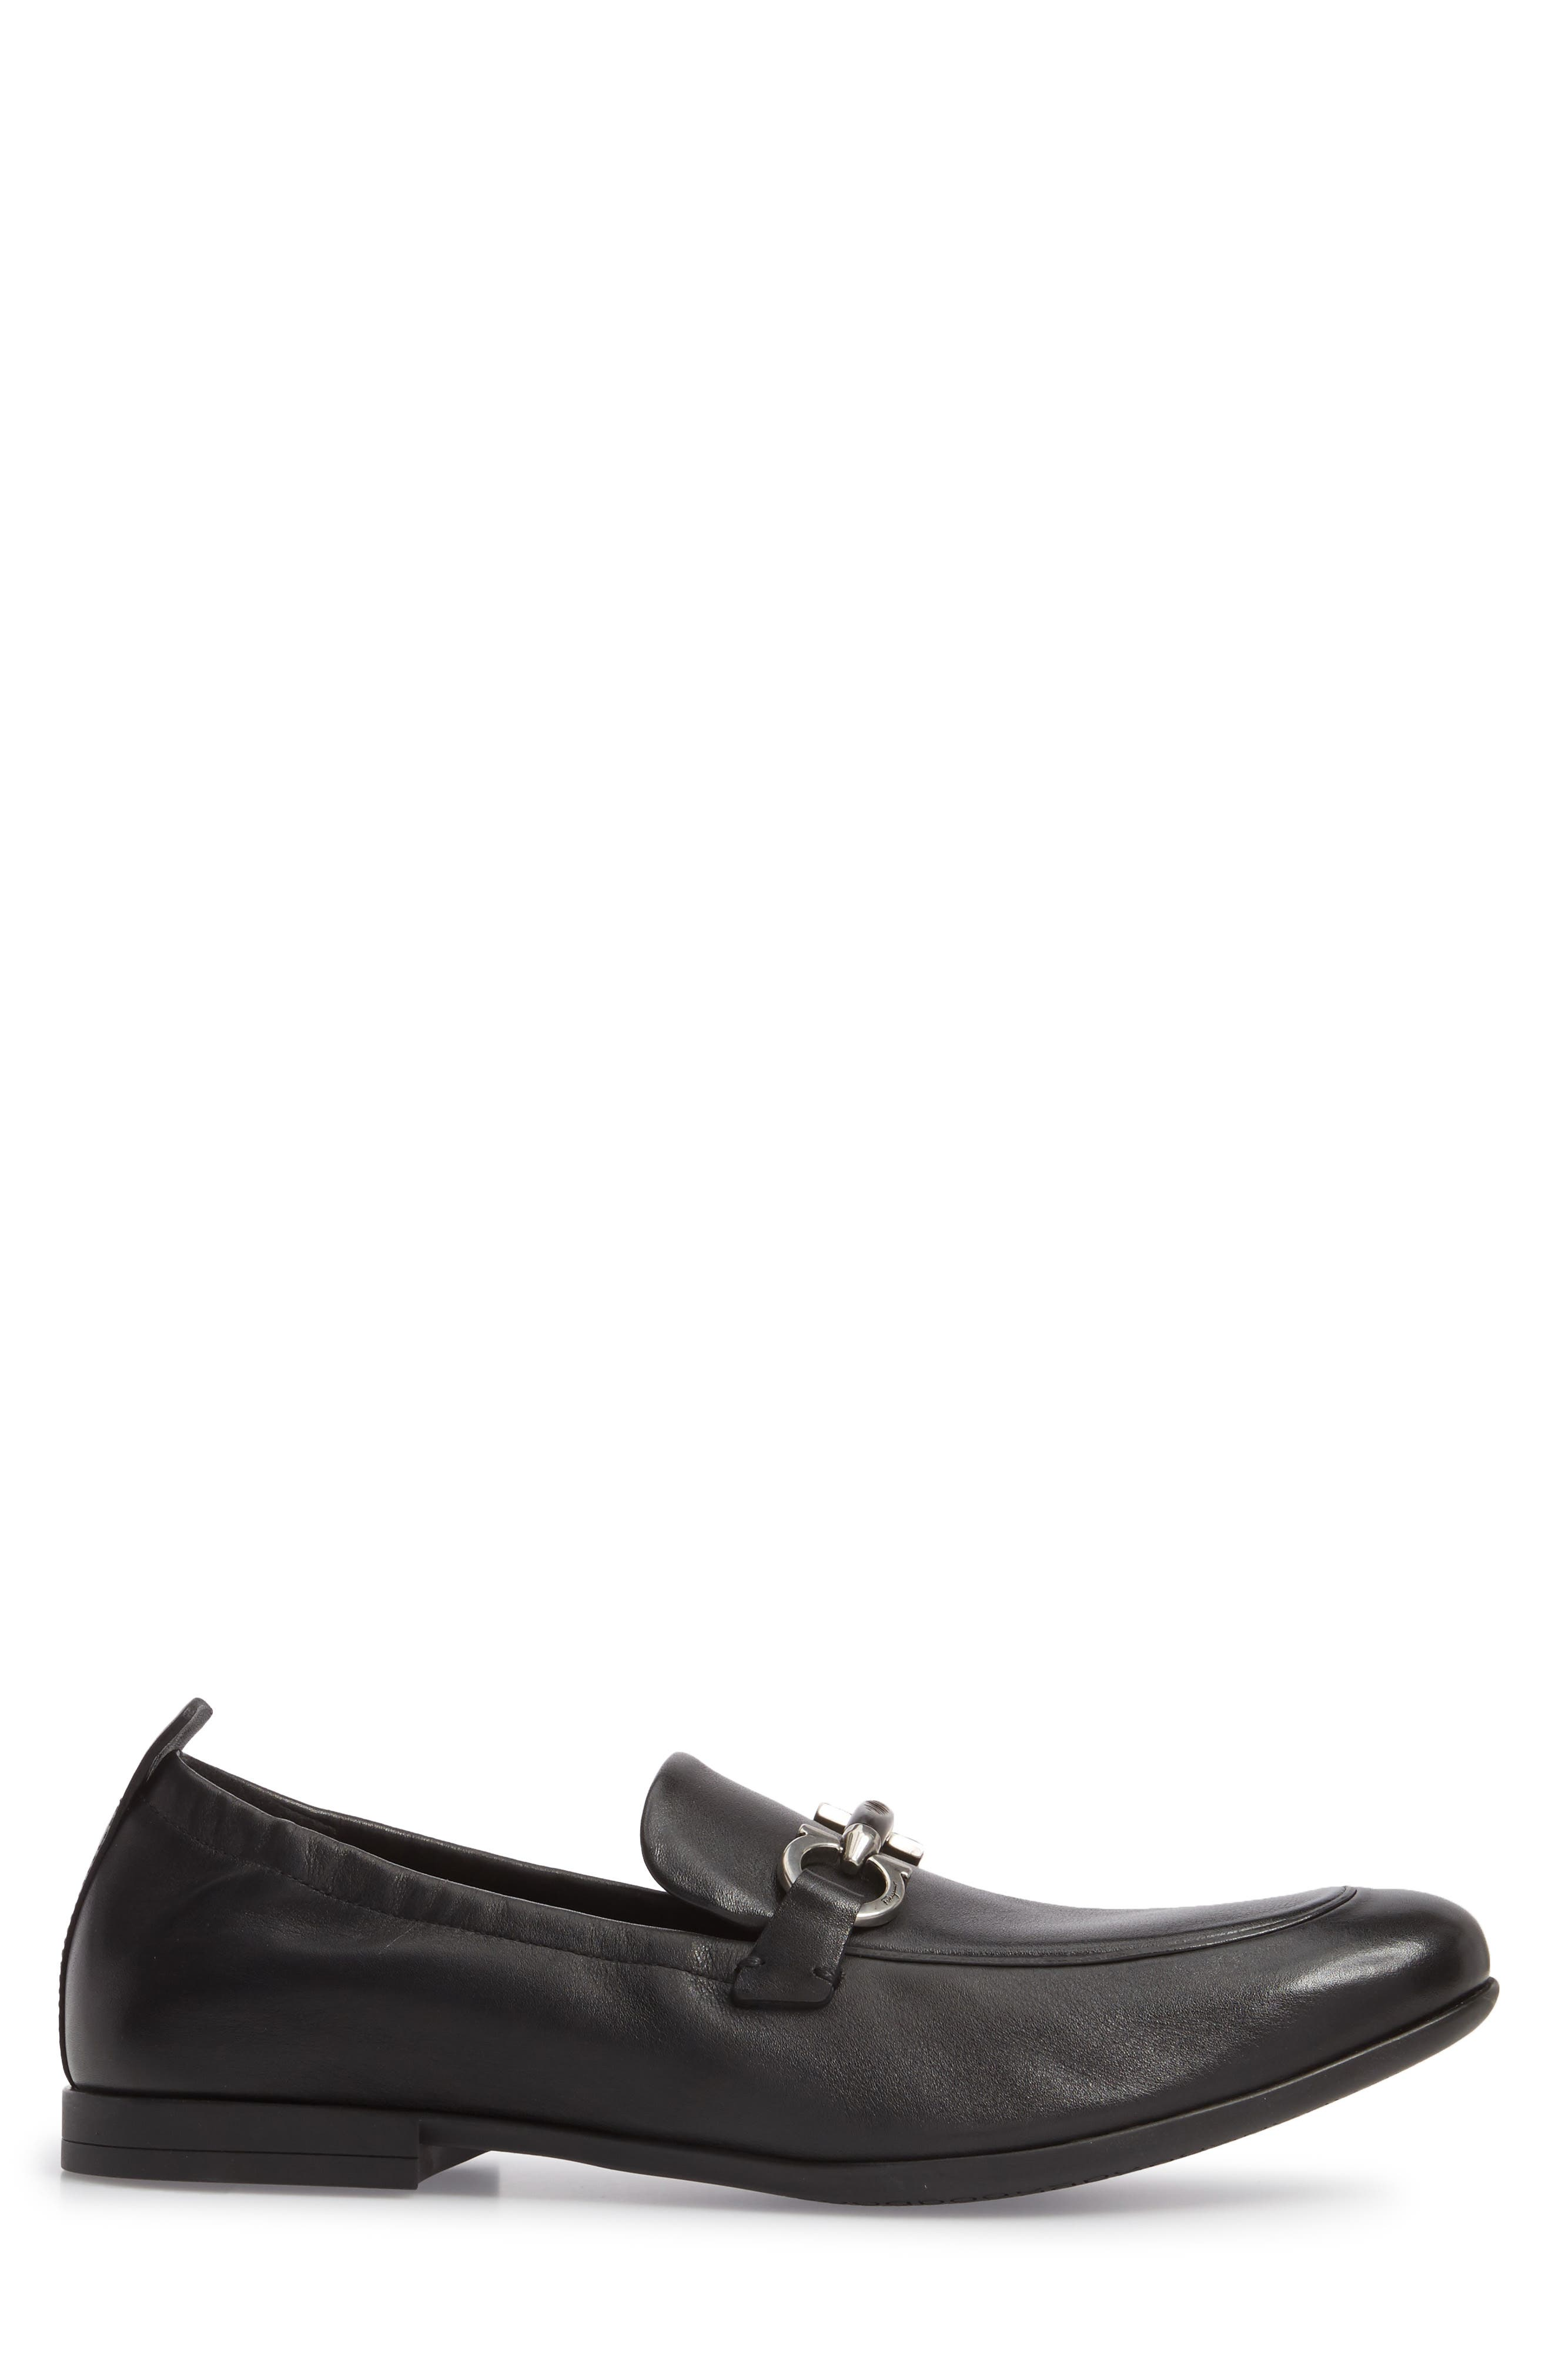 Celso Bit Loafer,                             Alternate thumbnail 3, color,                             001